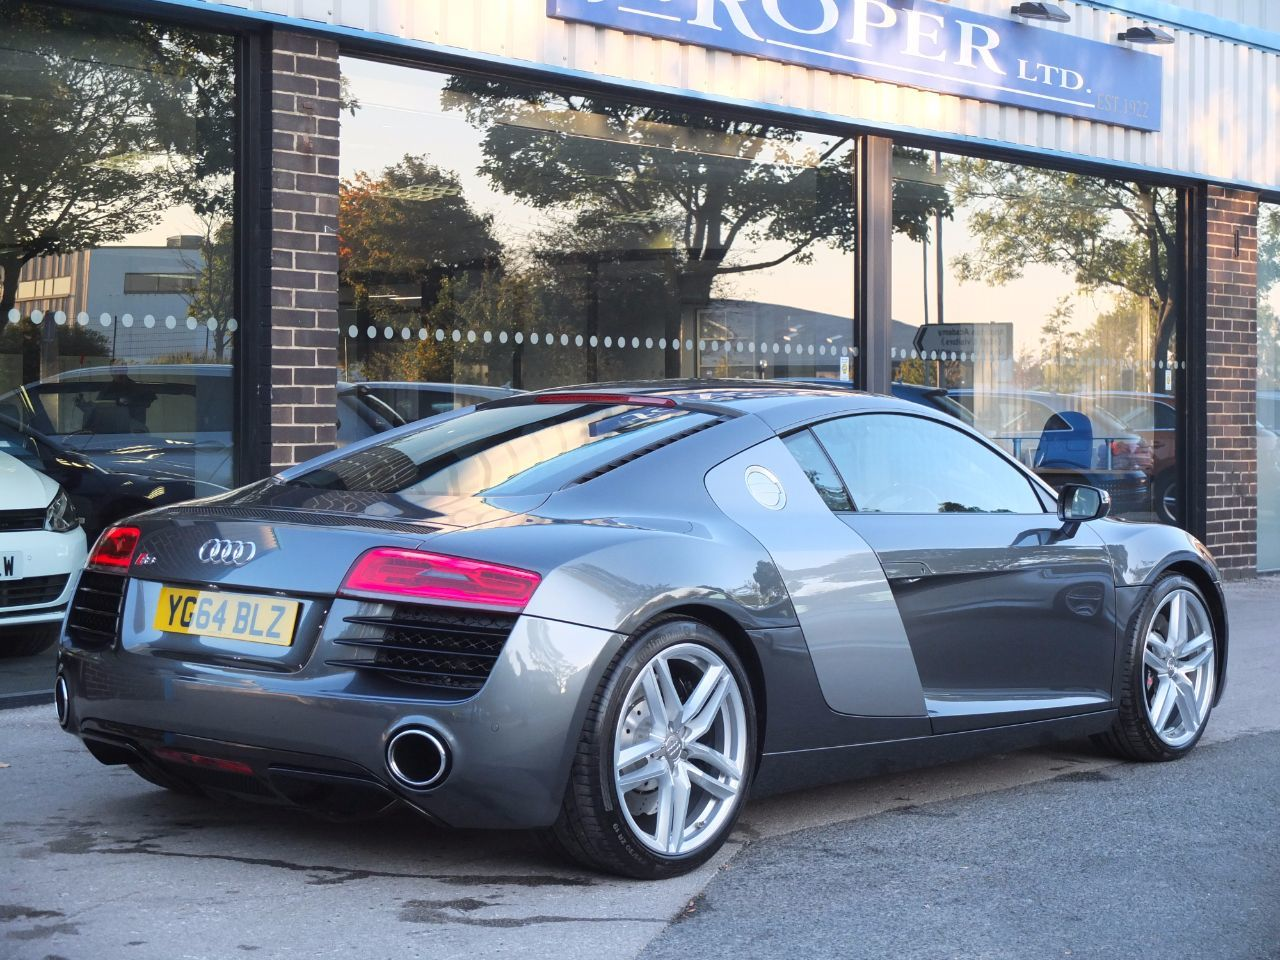 Audi R8 Coupe 4.2 FSI V8 Quattro S Tronic 430ps Coupe Petrol Daytona Grey Metallic, Quartz Grey Side Blades